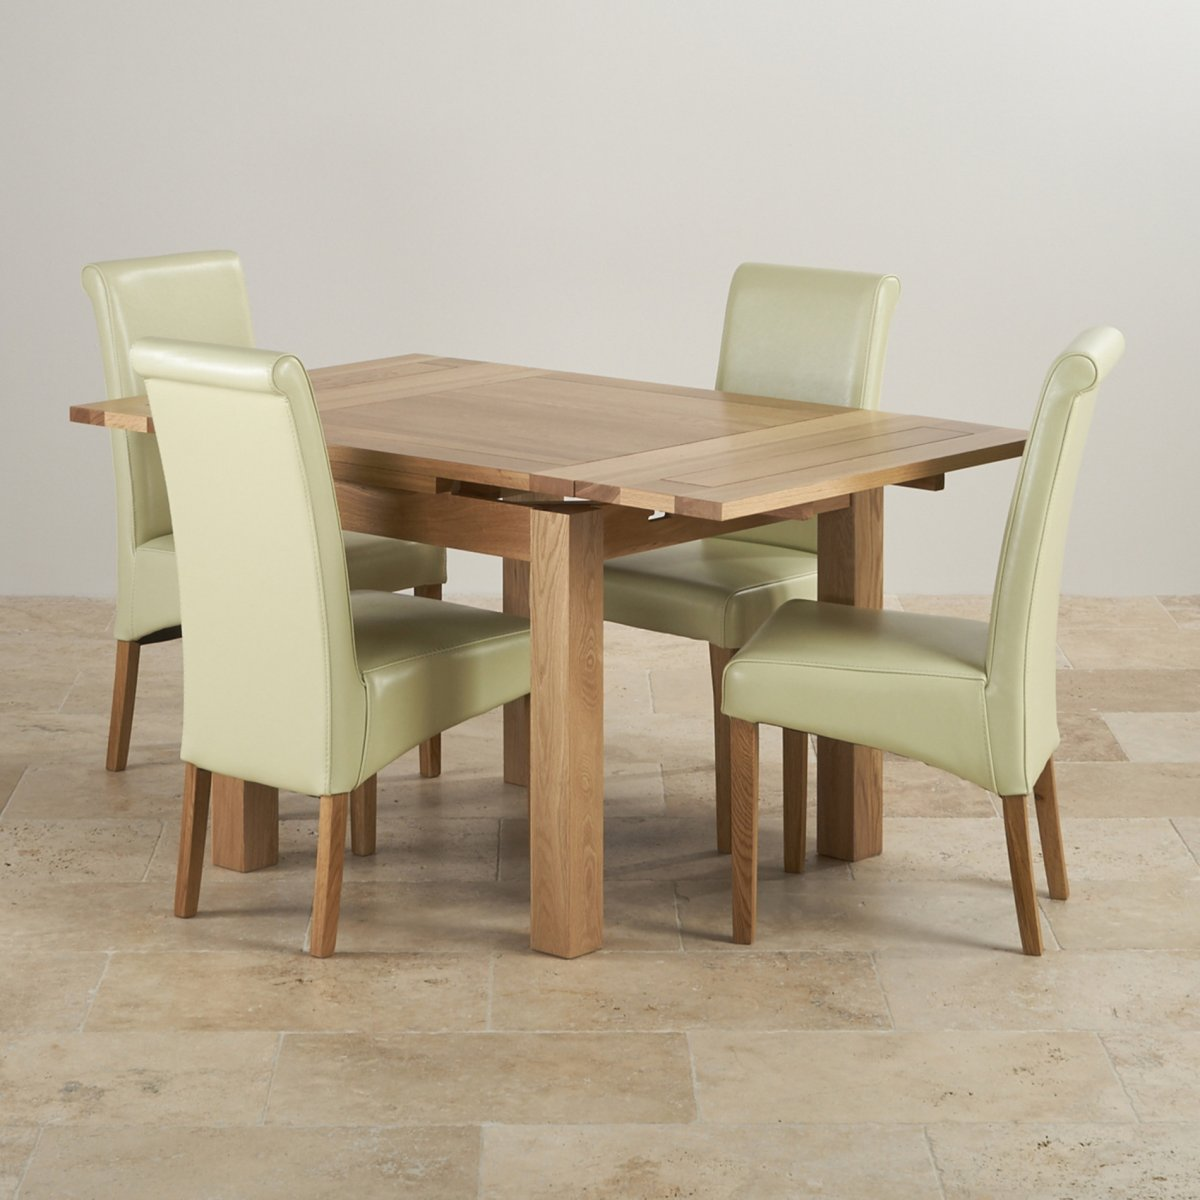 Dorset Oak 3ft Dining Table With 4 Cream Chairs